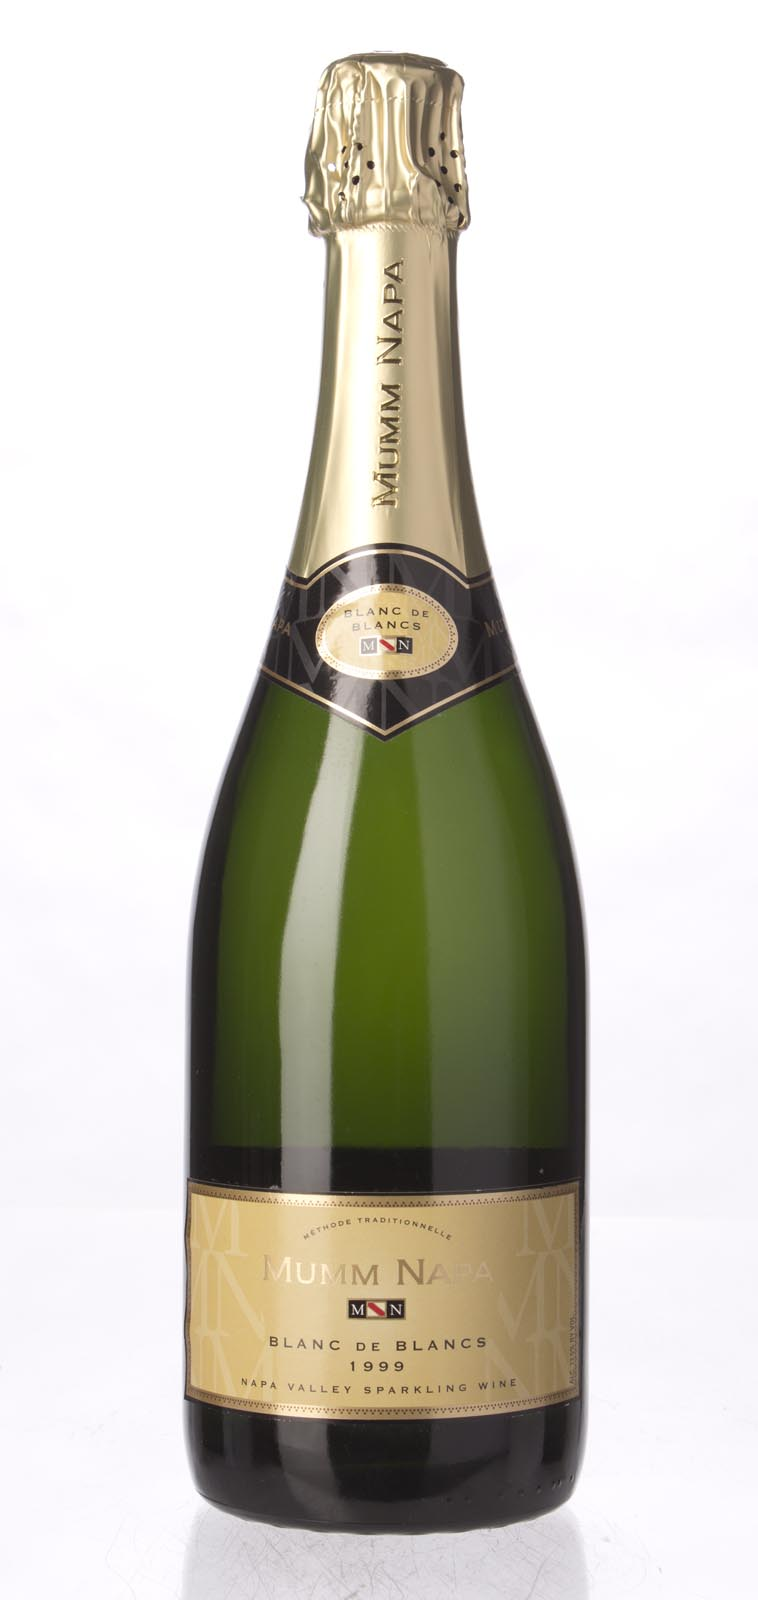 Mumm Cuvee Napa Brut Blanc de Blancs 1999, 750ml () from The BPW - Merchants of rare and fine wines.